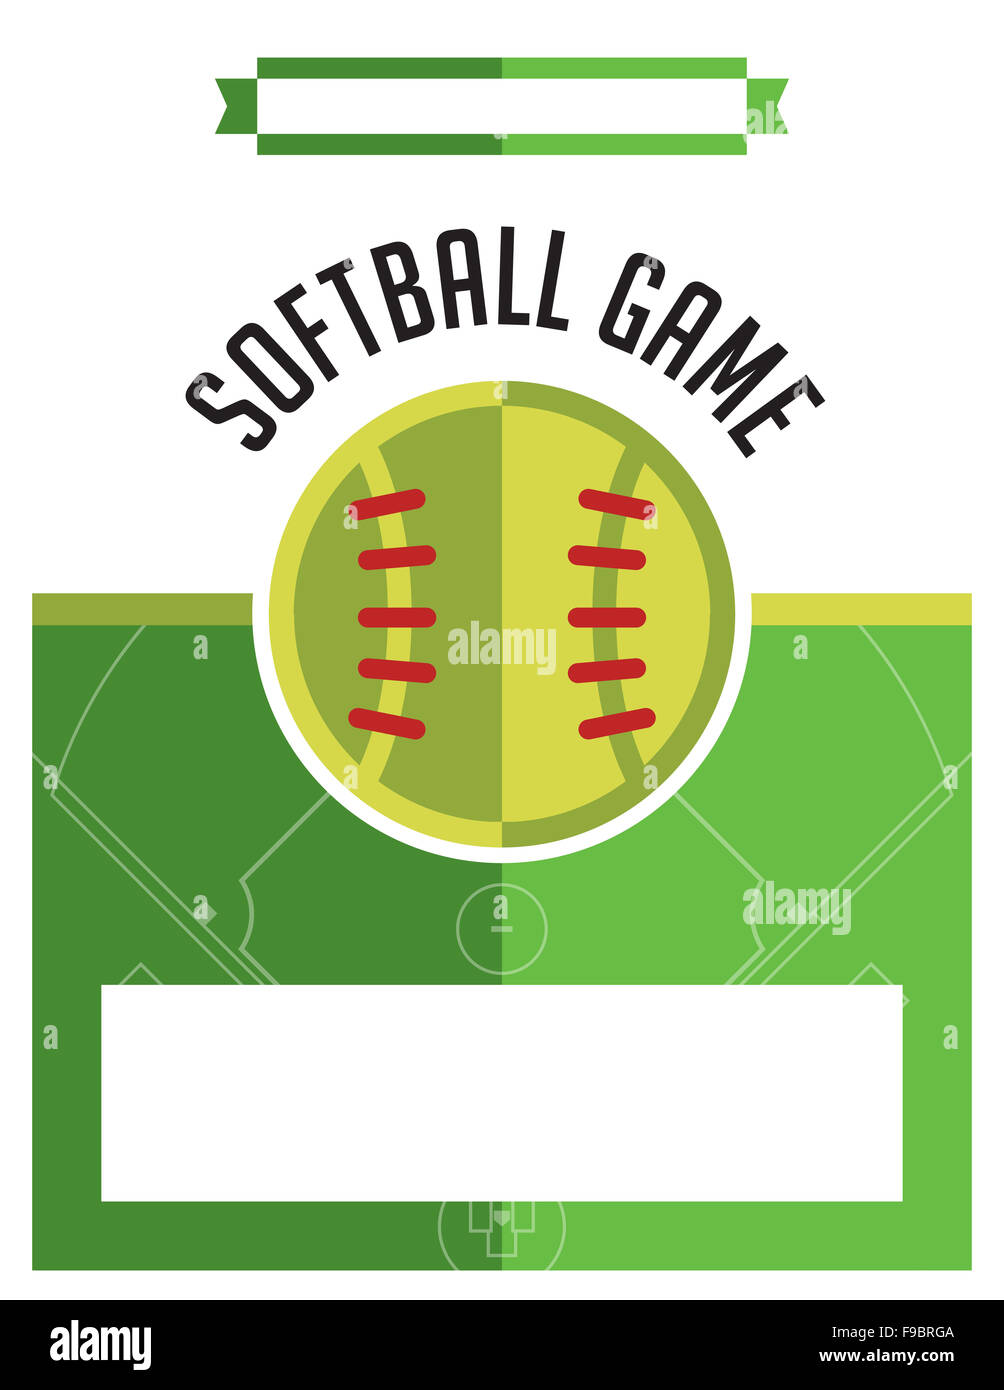 A template flyer background for a softball game. Stock Photo